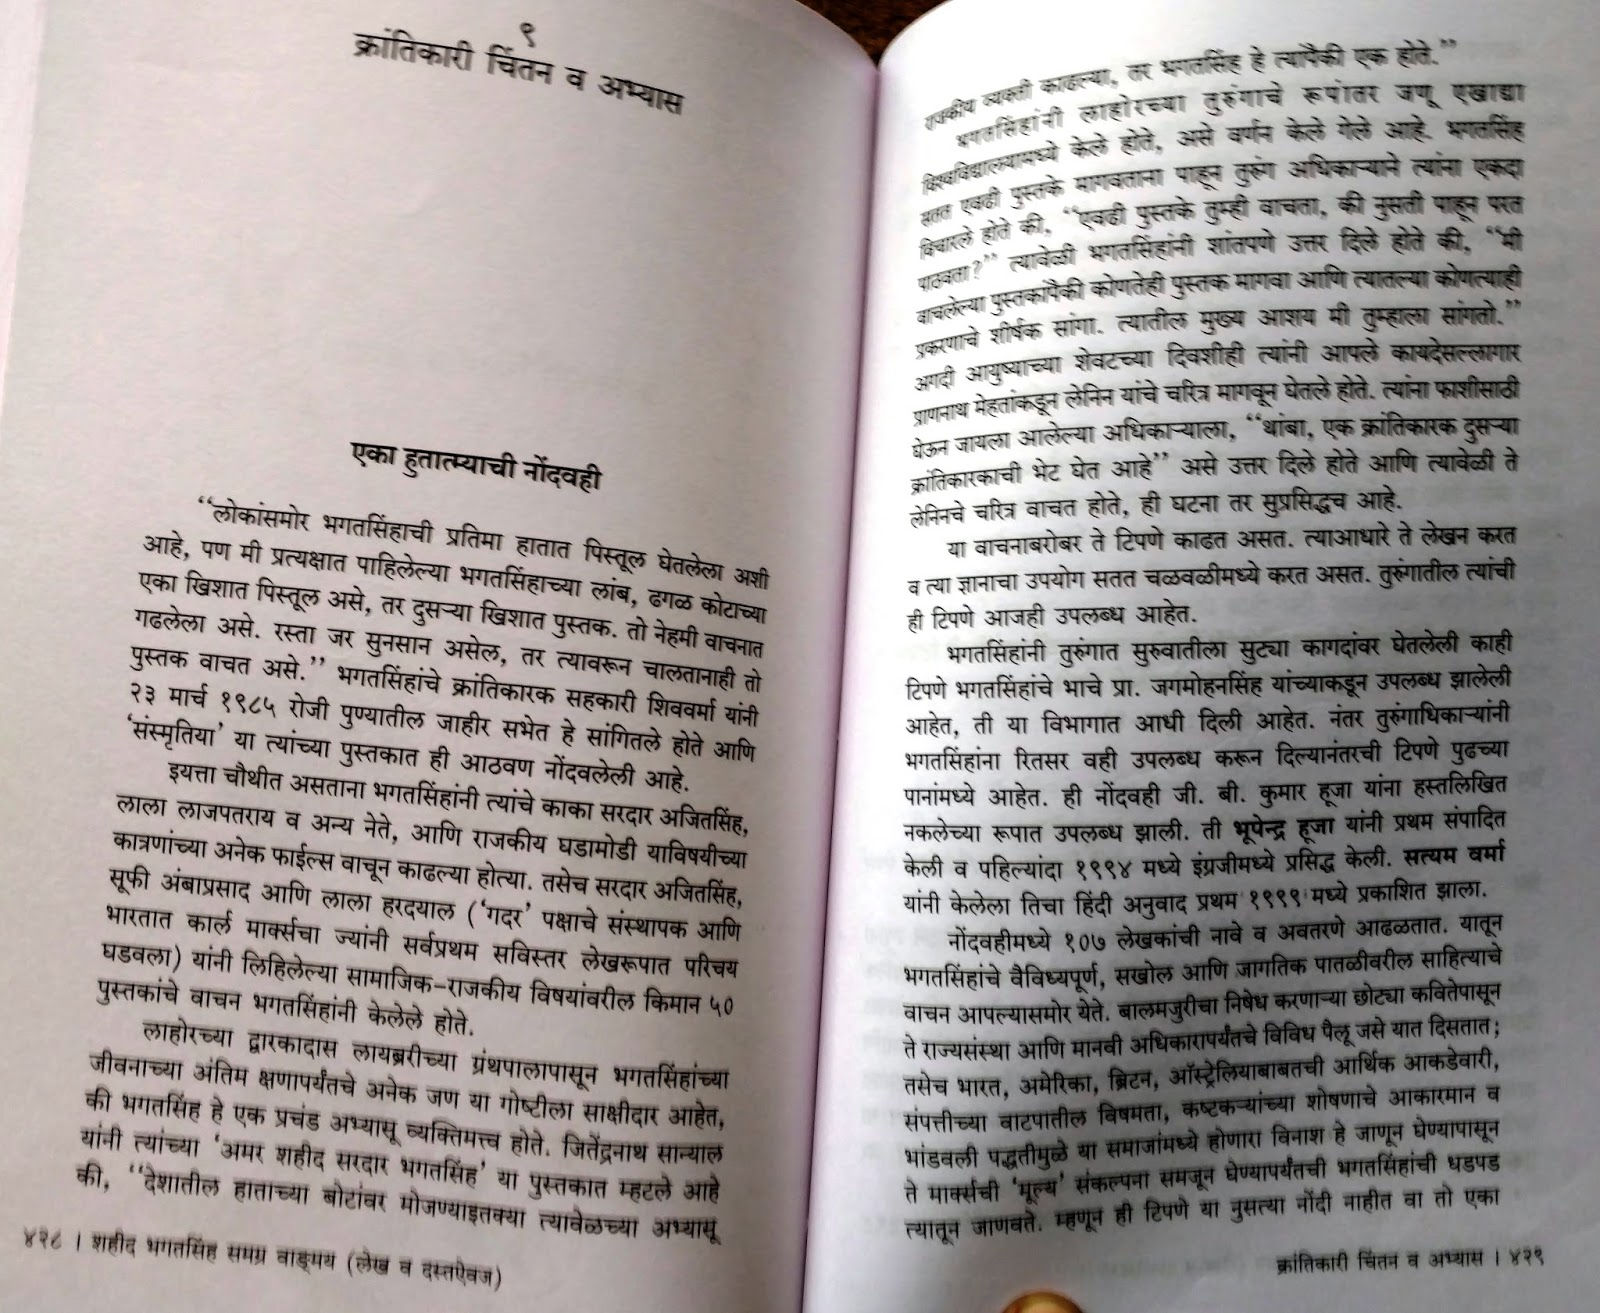 marathi essay writing Many jews escape from the horror marathi of the holocaust in class i  years,  looking for research paper writing services, custom essay on.